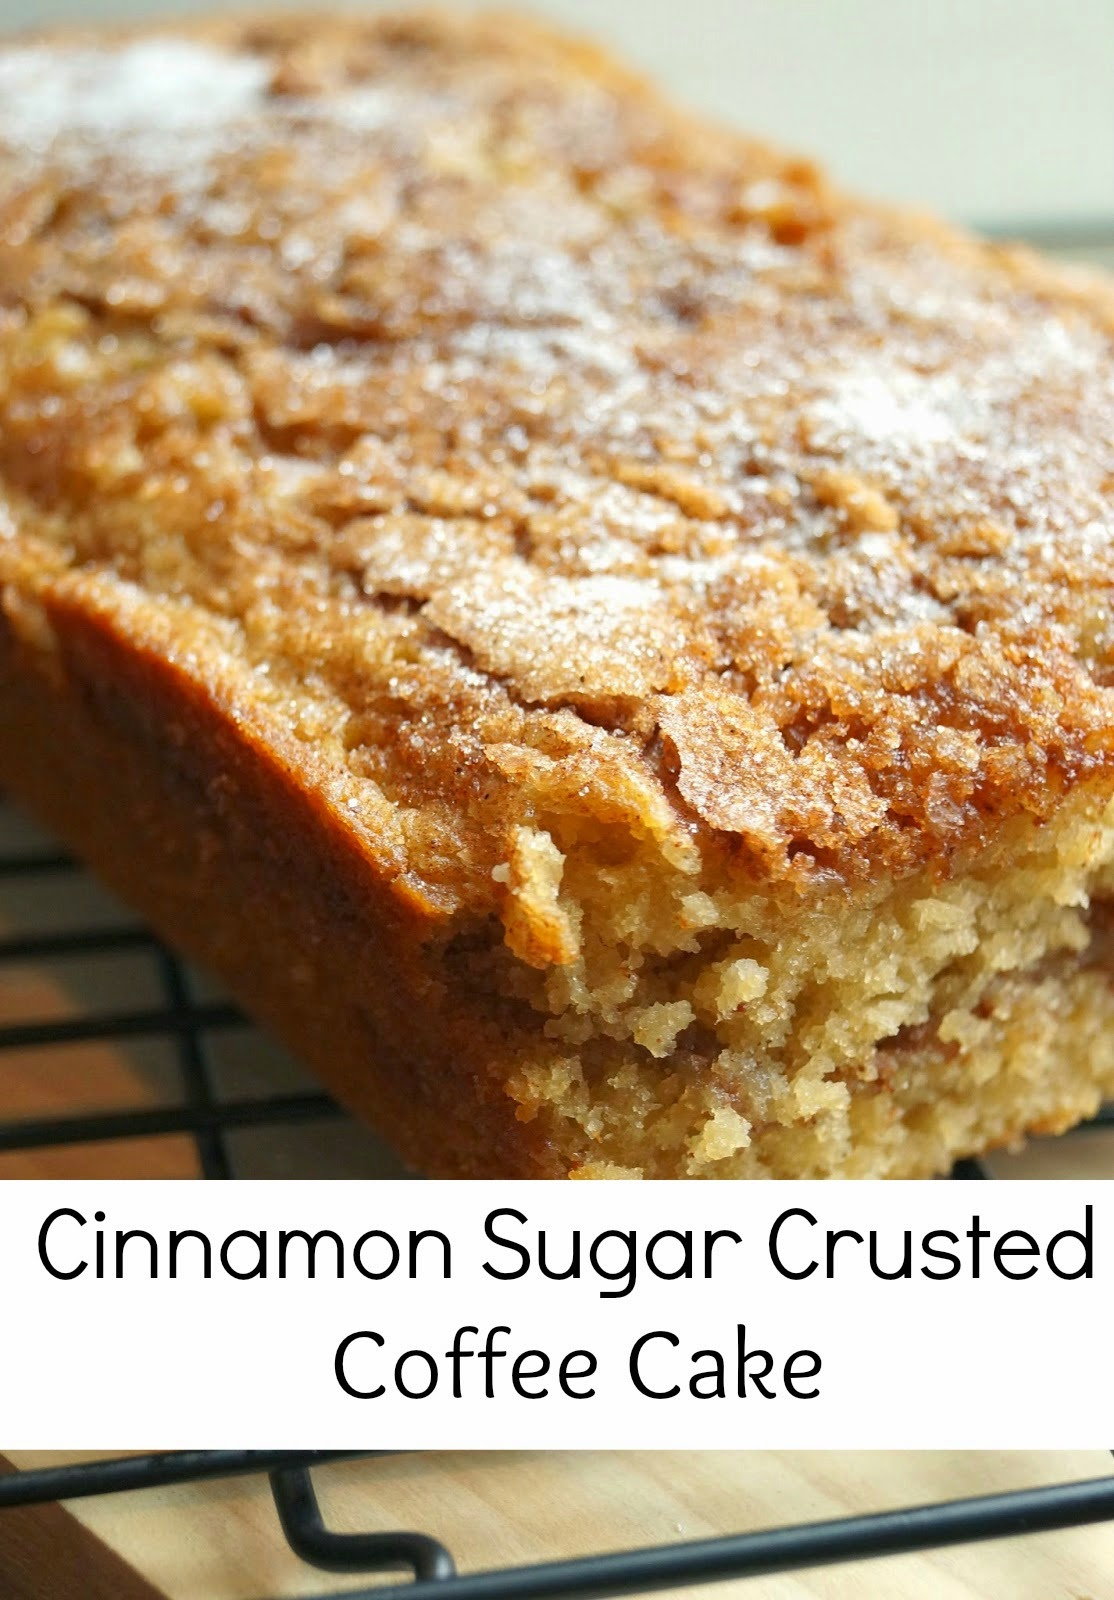 Old House to New Home : Cinnamon Sugar Crusted Coffee Cake